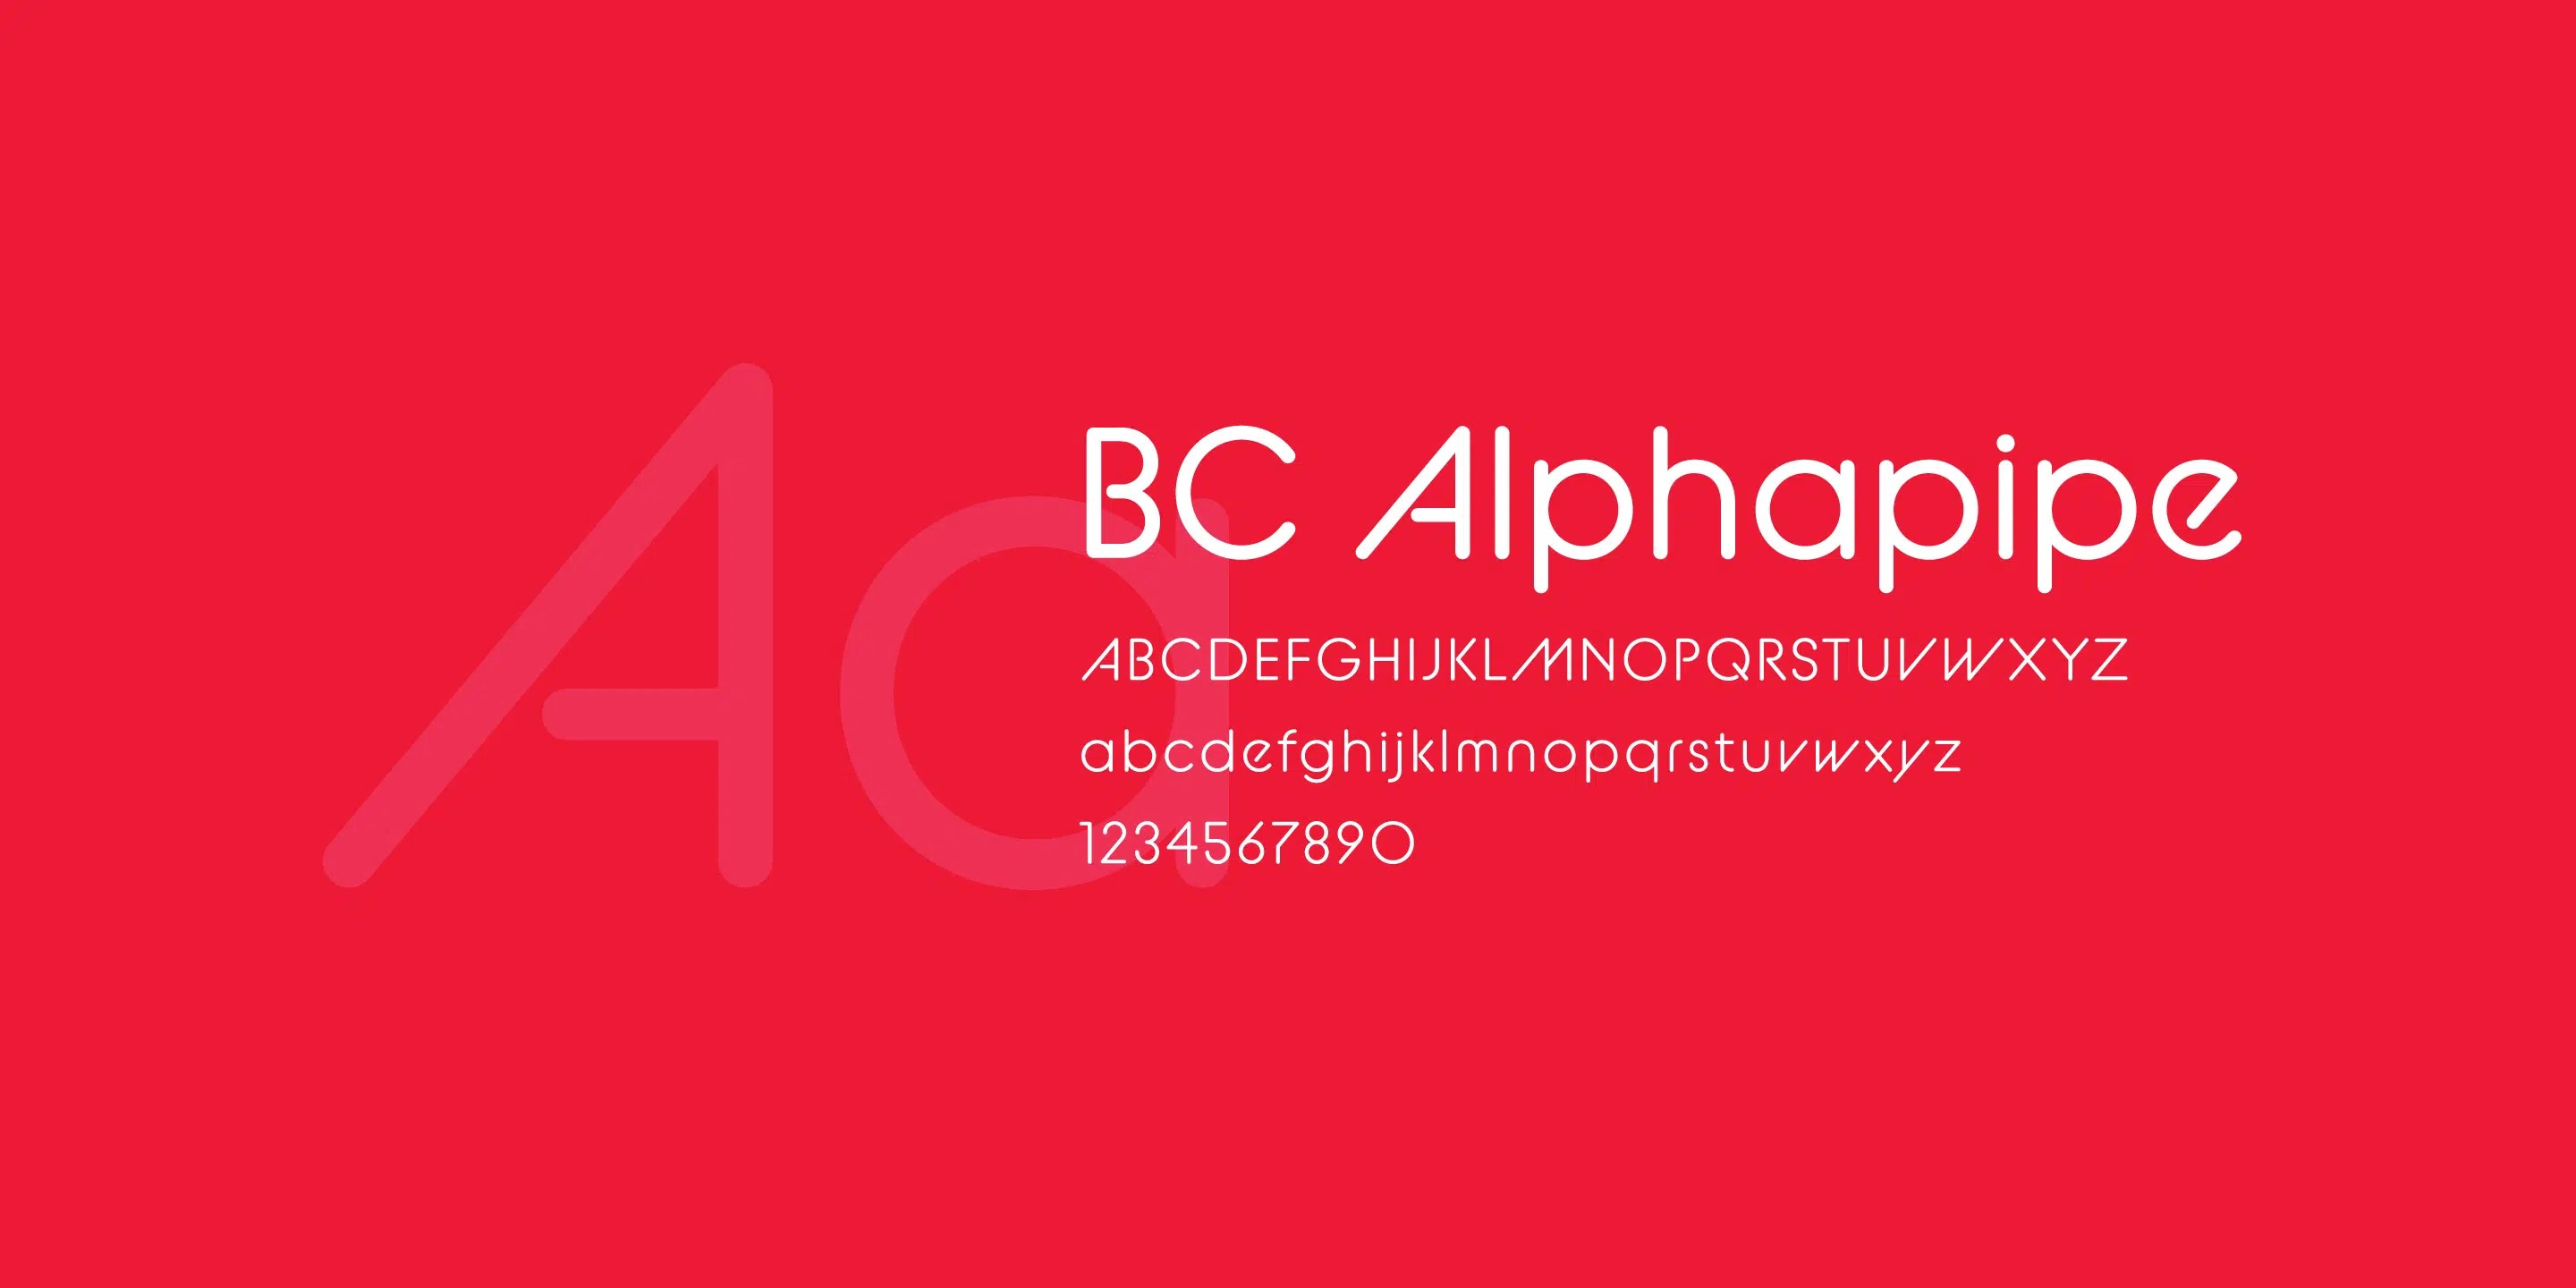 an example of the bc alphapipe typeface